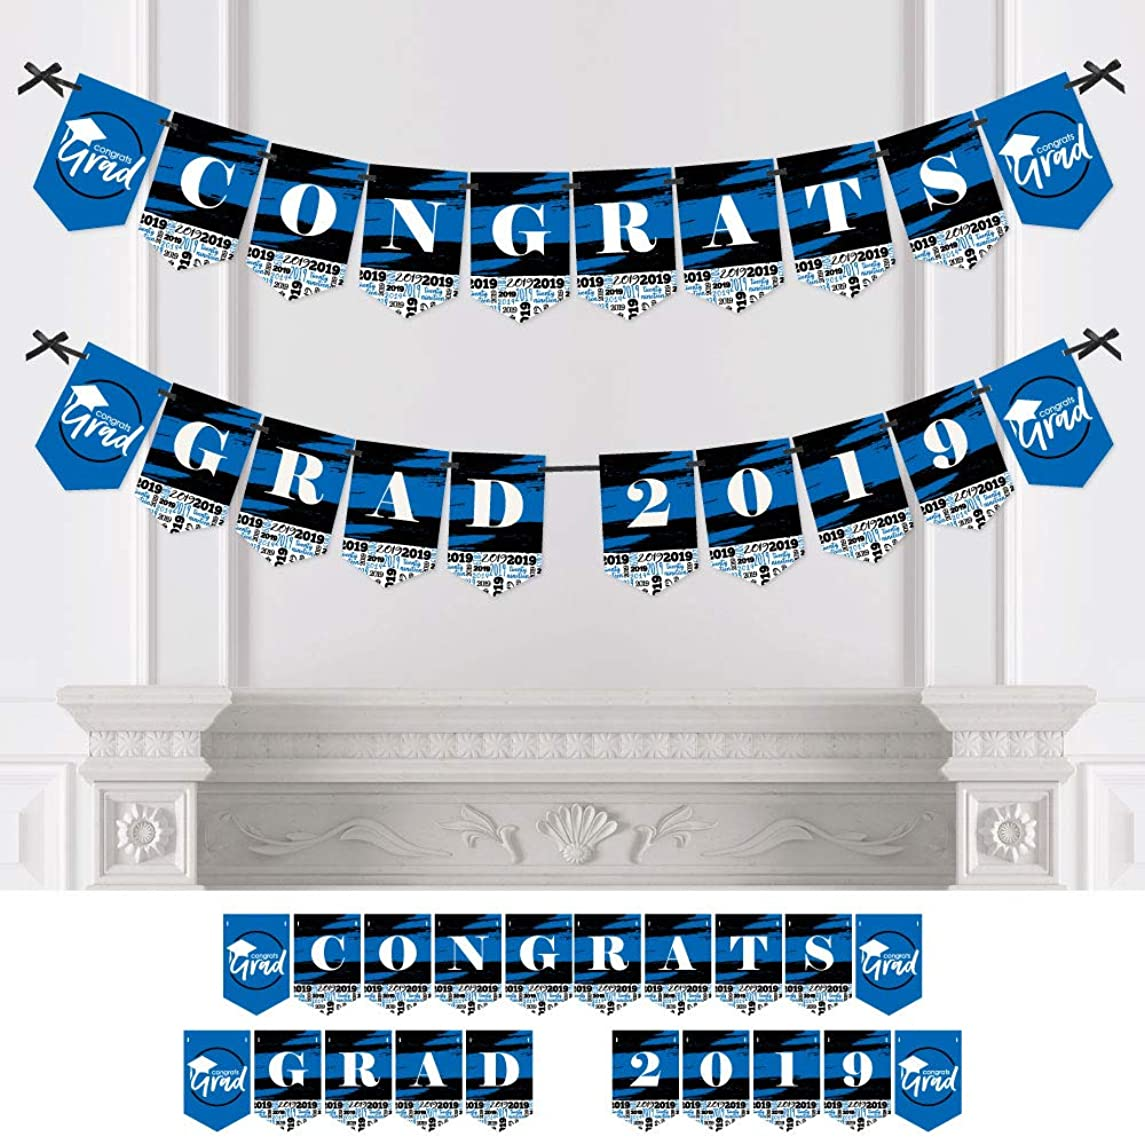 Blue Grad - Best is Yet to Come - Royal Blue Graduation Party Bunting Banner - Party Decorations - Congrats Grad 2019